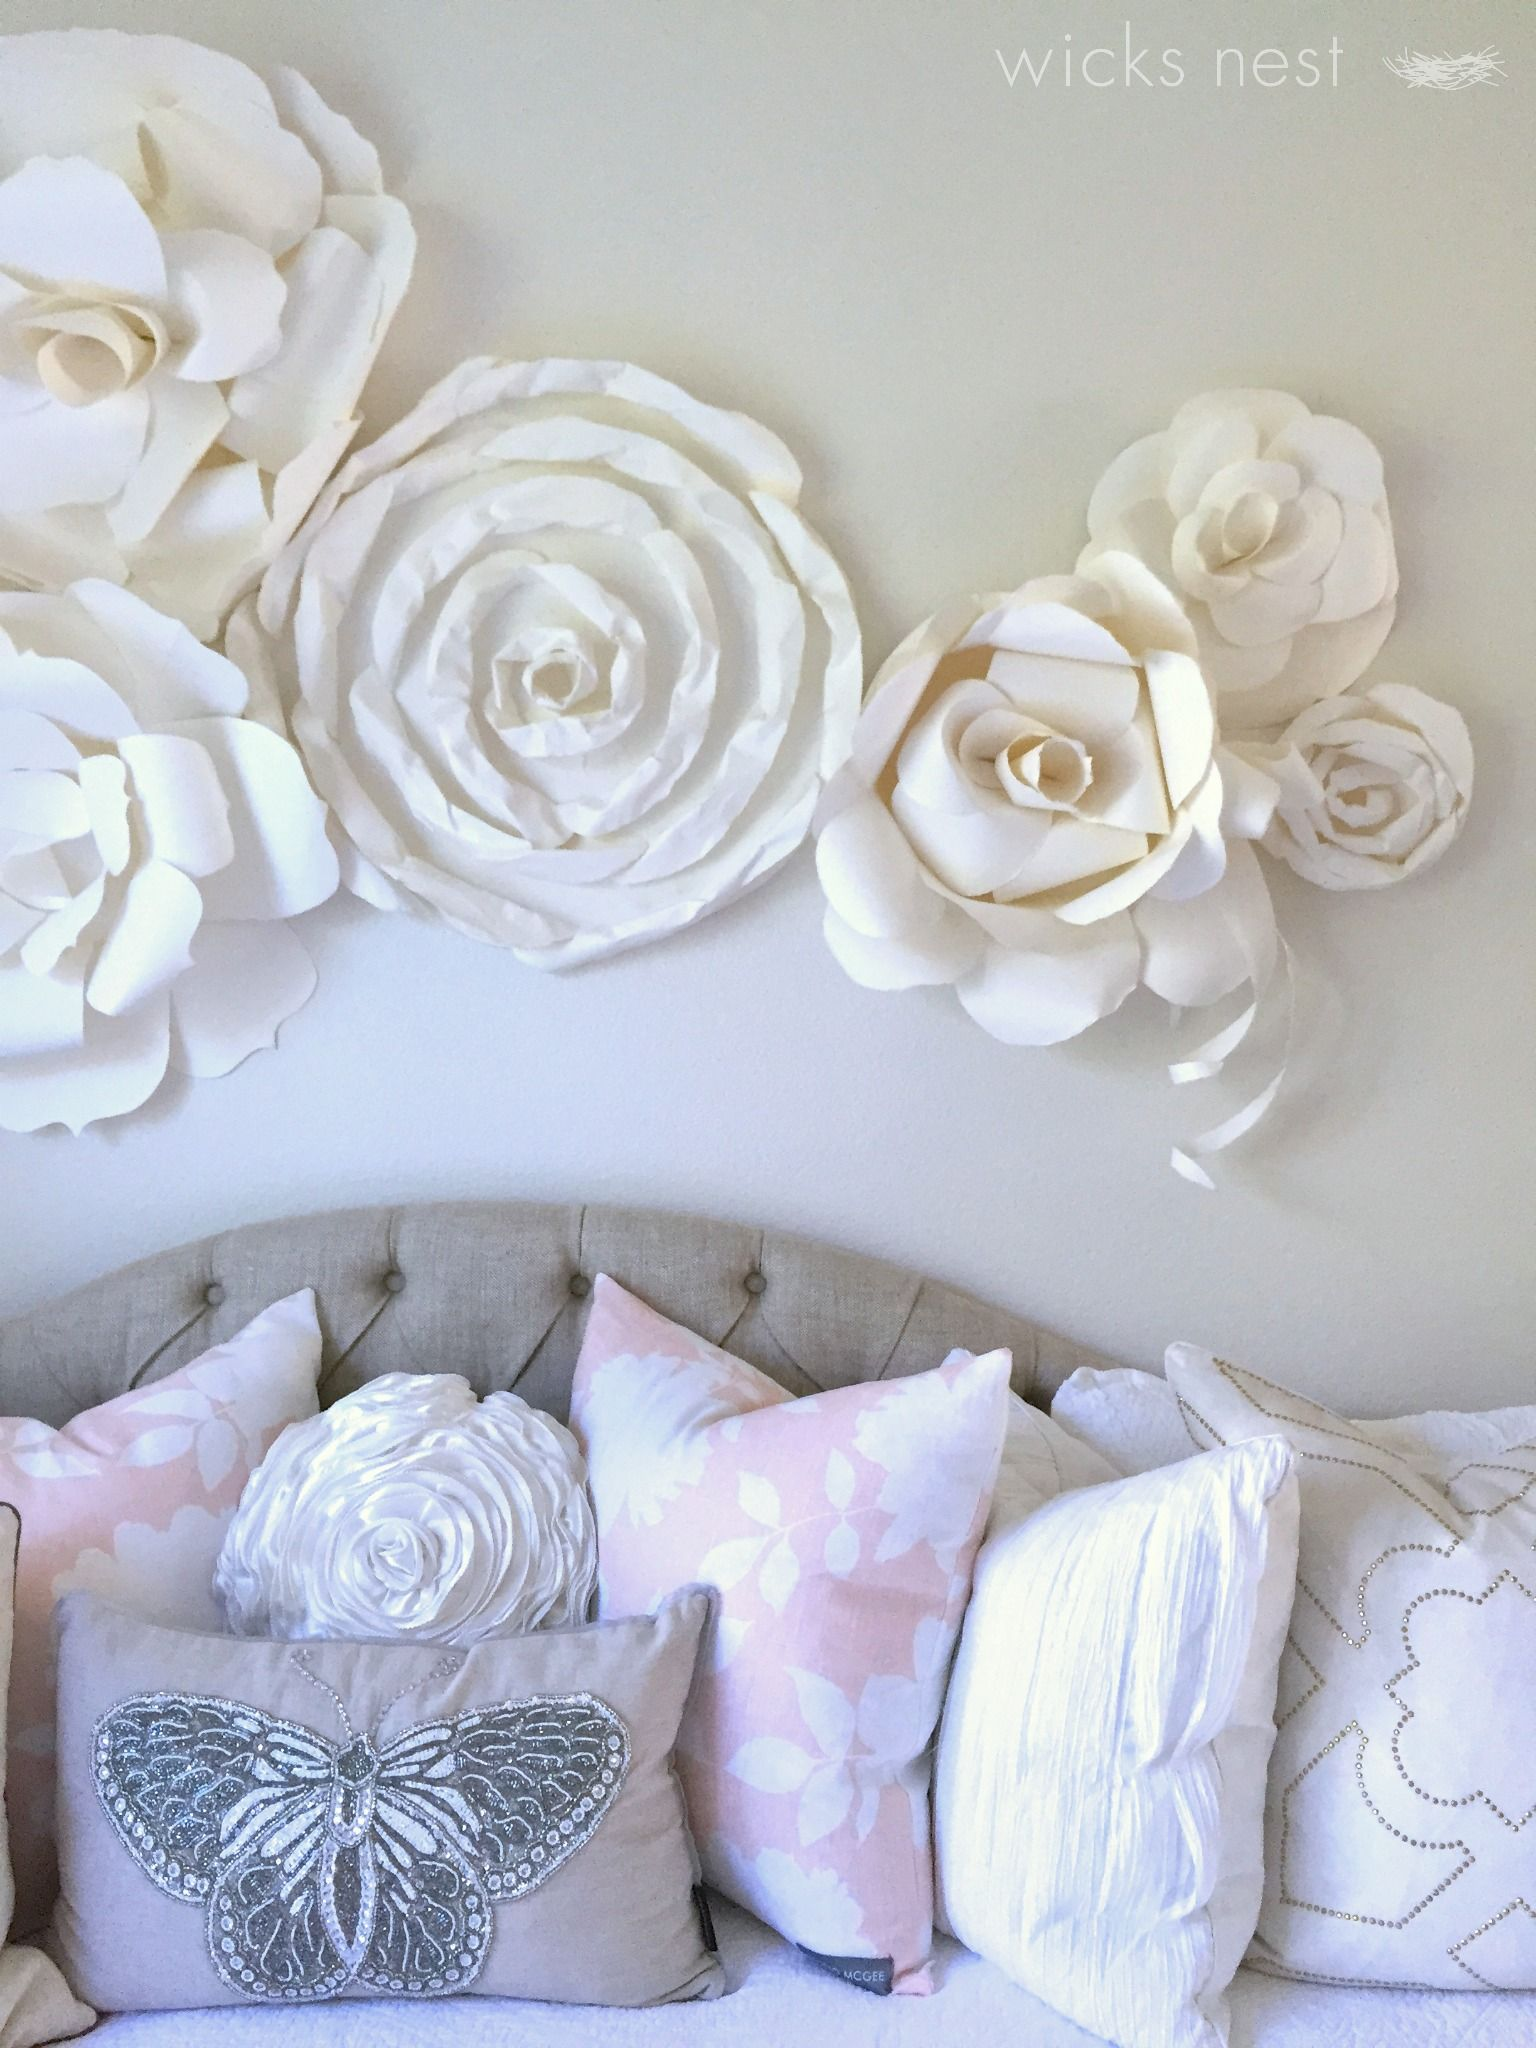 Mix and match pillows to create a bedscape that is ohso